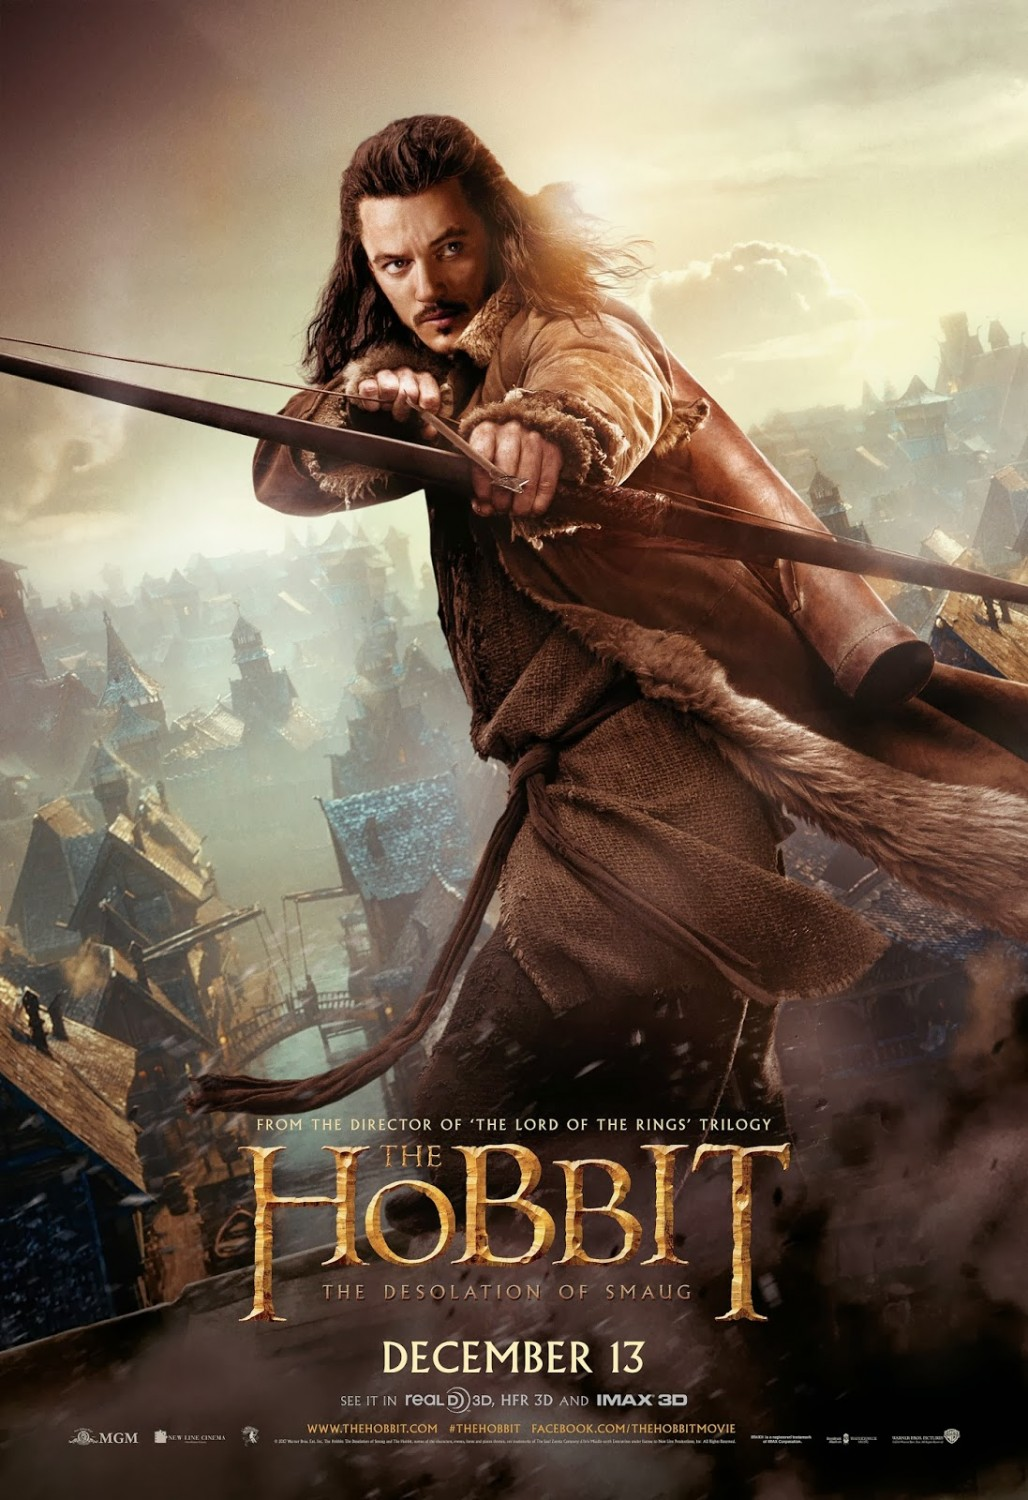 THE HOBBIT THE DESOLATION OF SMAUG-Official Poster Banner PROMO POSTER-07NOVEMBRO2013-04